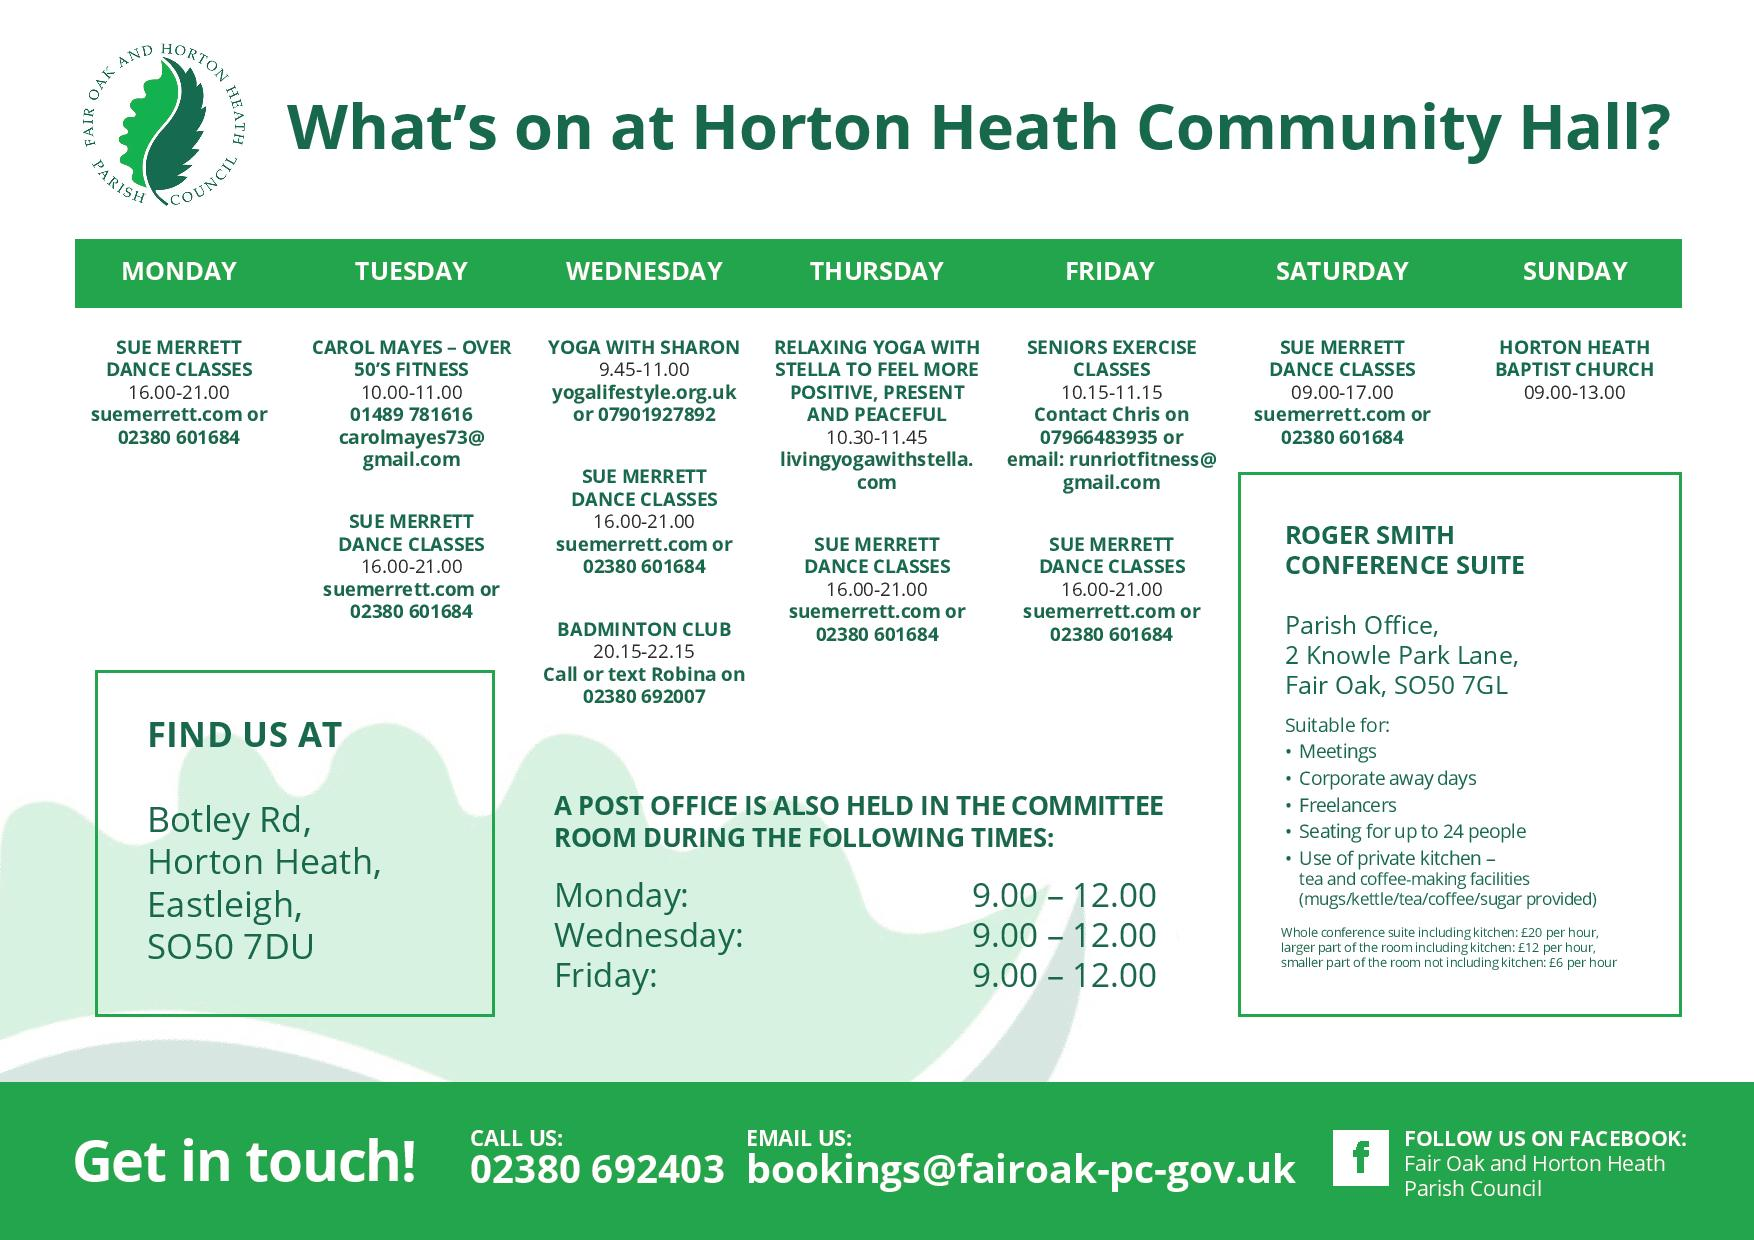 What's on at Horton Heath Community Hall?